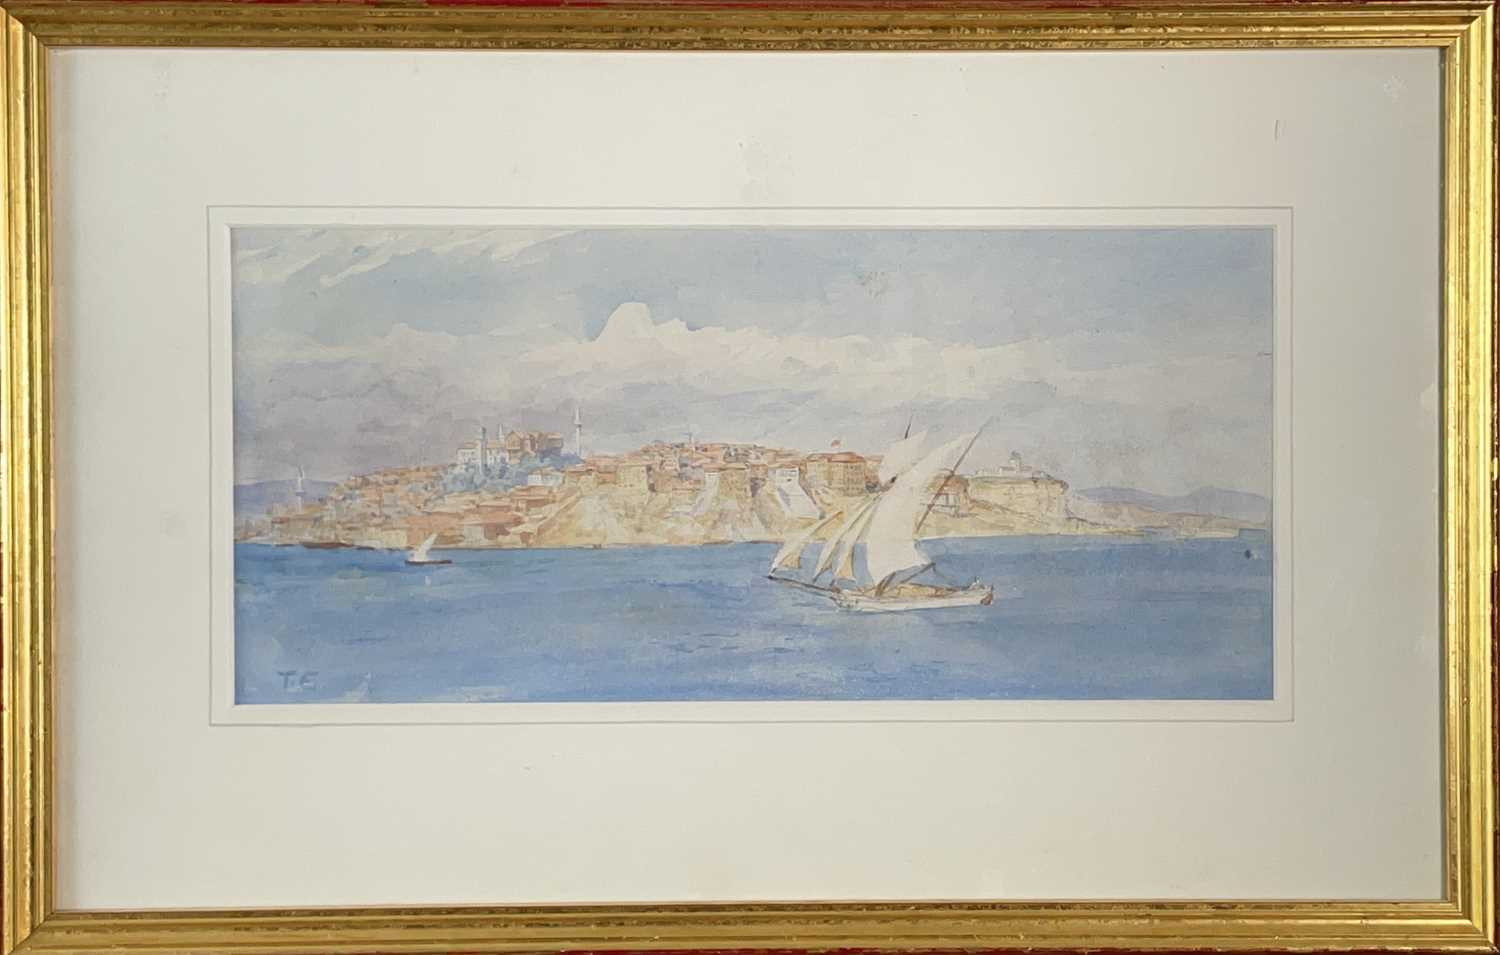 Tristram James ELLIS (1844-1922) Constantinople Signed with initials 17x37cm - Image 2 of 3